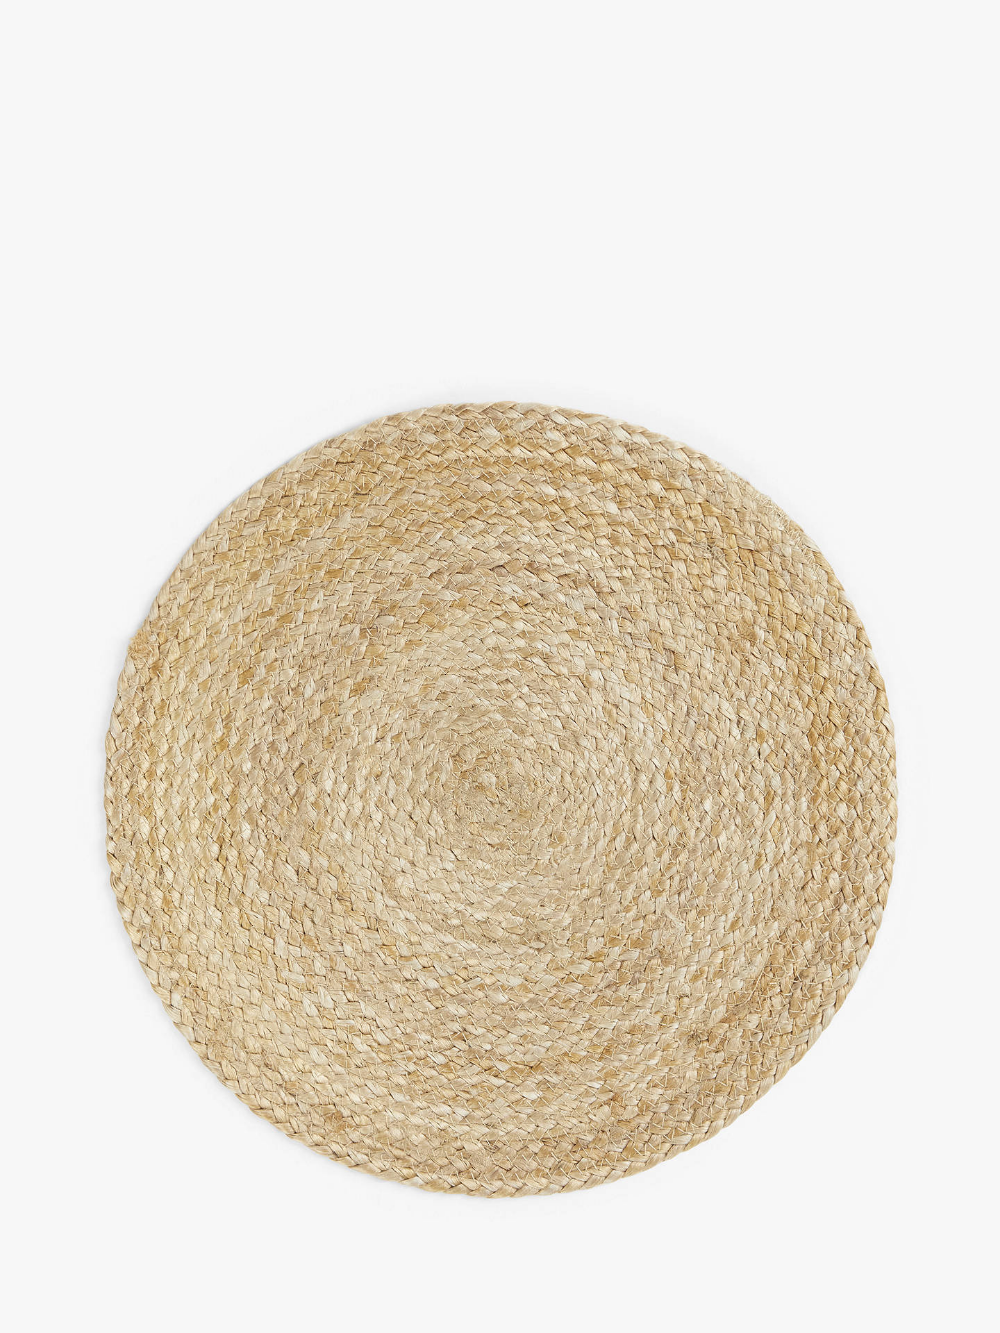 John Lewis Partners Round Jute Placemat Natural Woven Placemats Placemats Jute